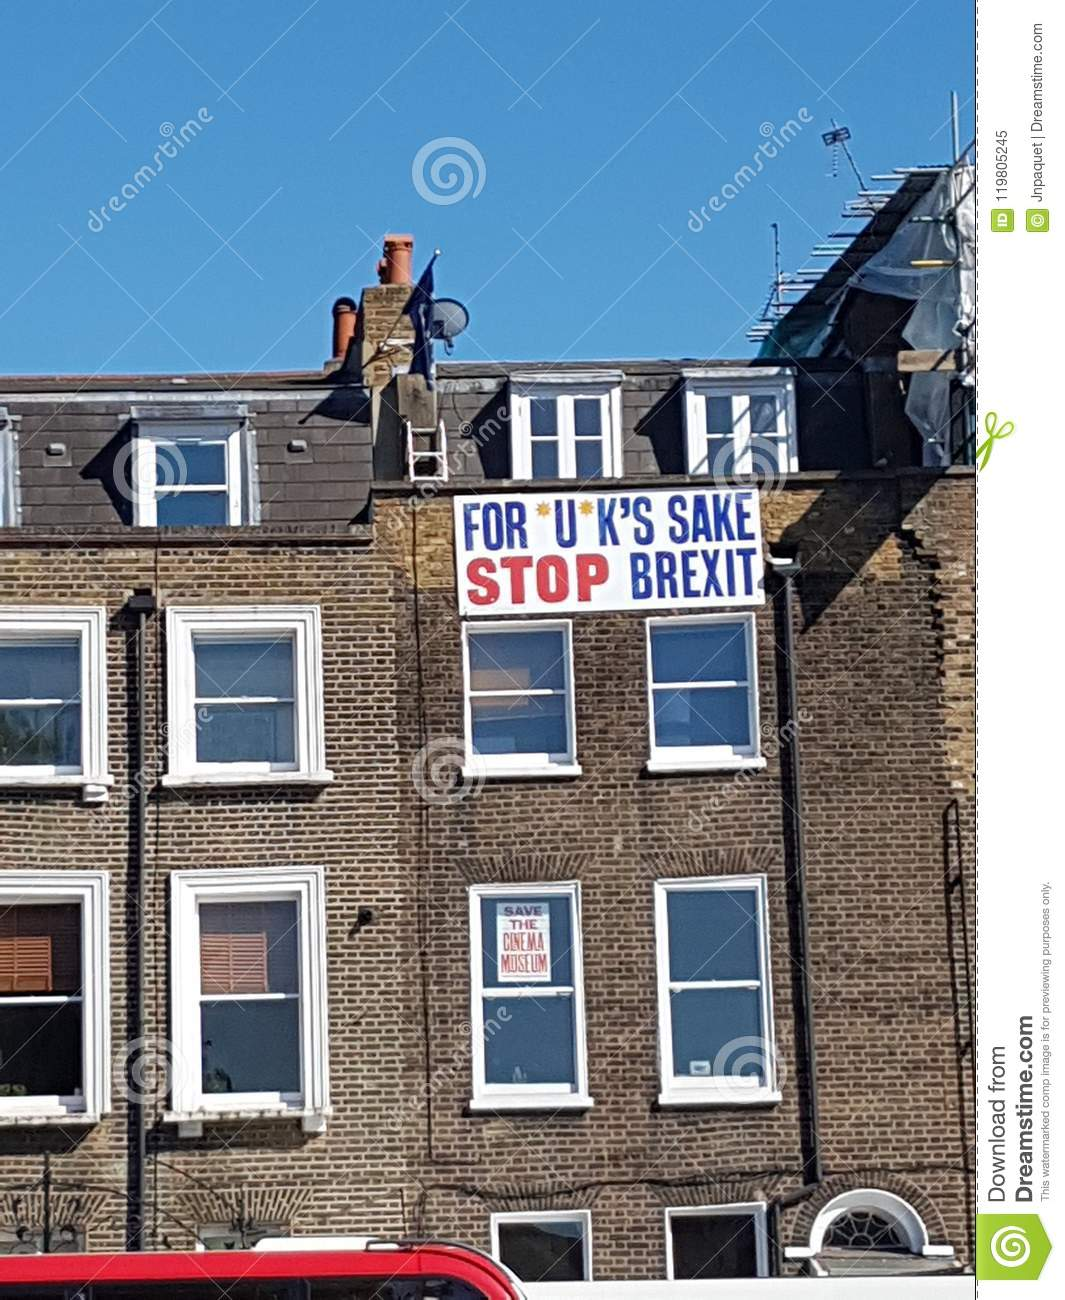 Anti-Brexit banner - For *U*K`s sake, Stop Brexit - at the top of a building in London.